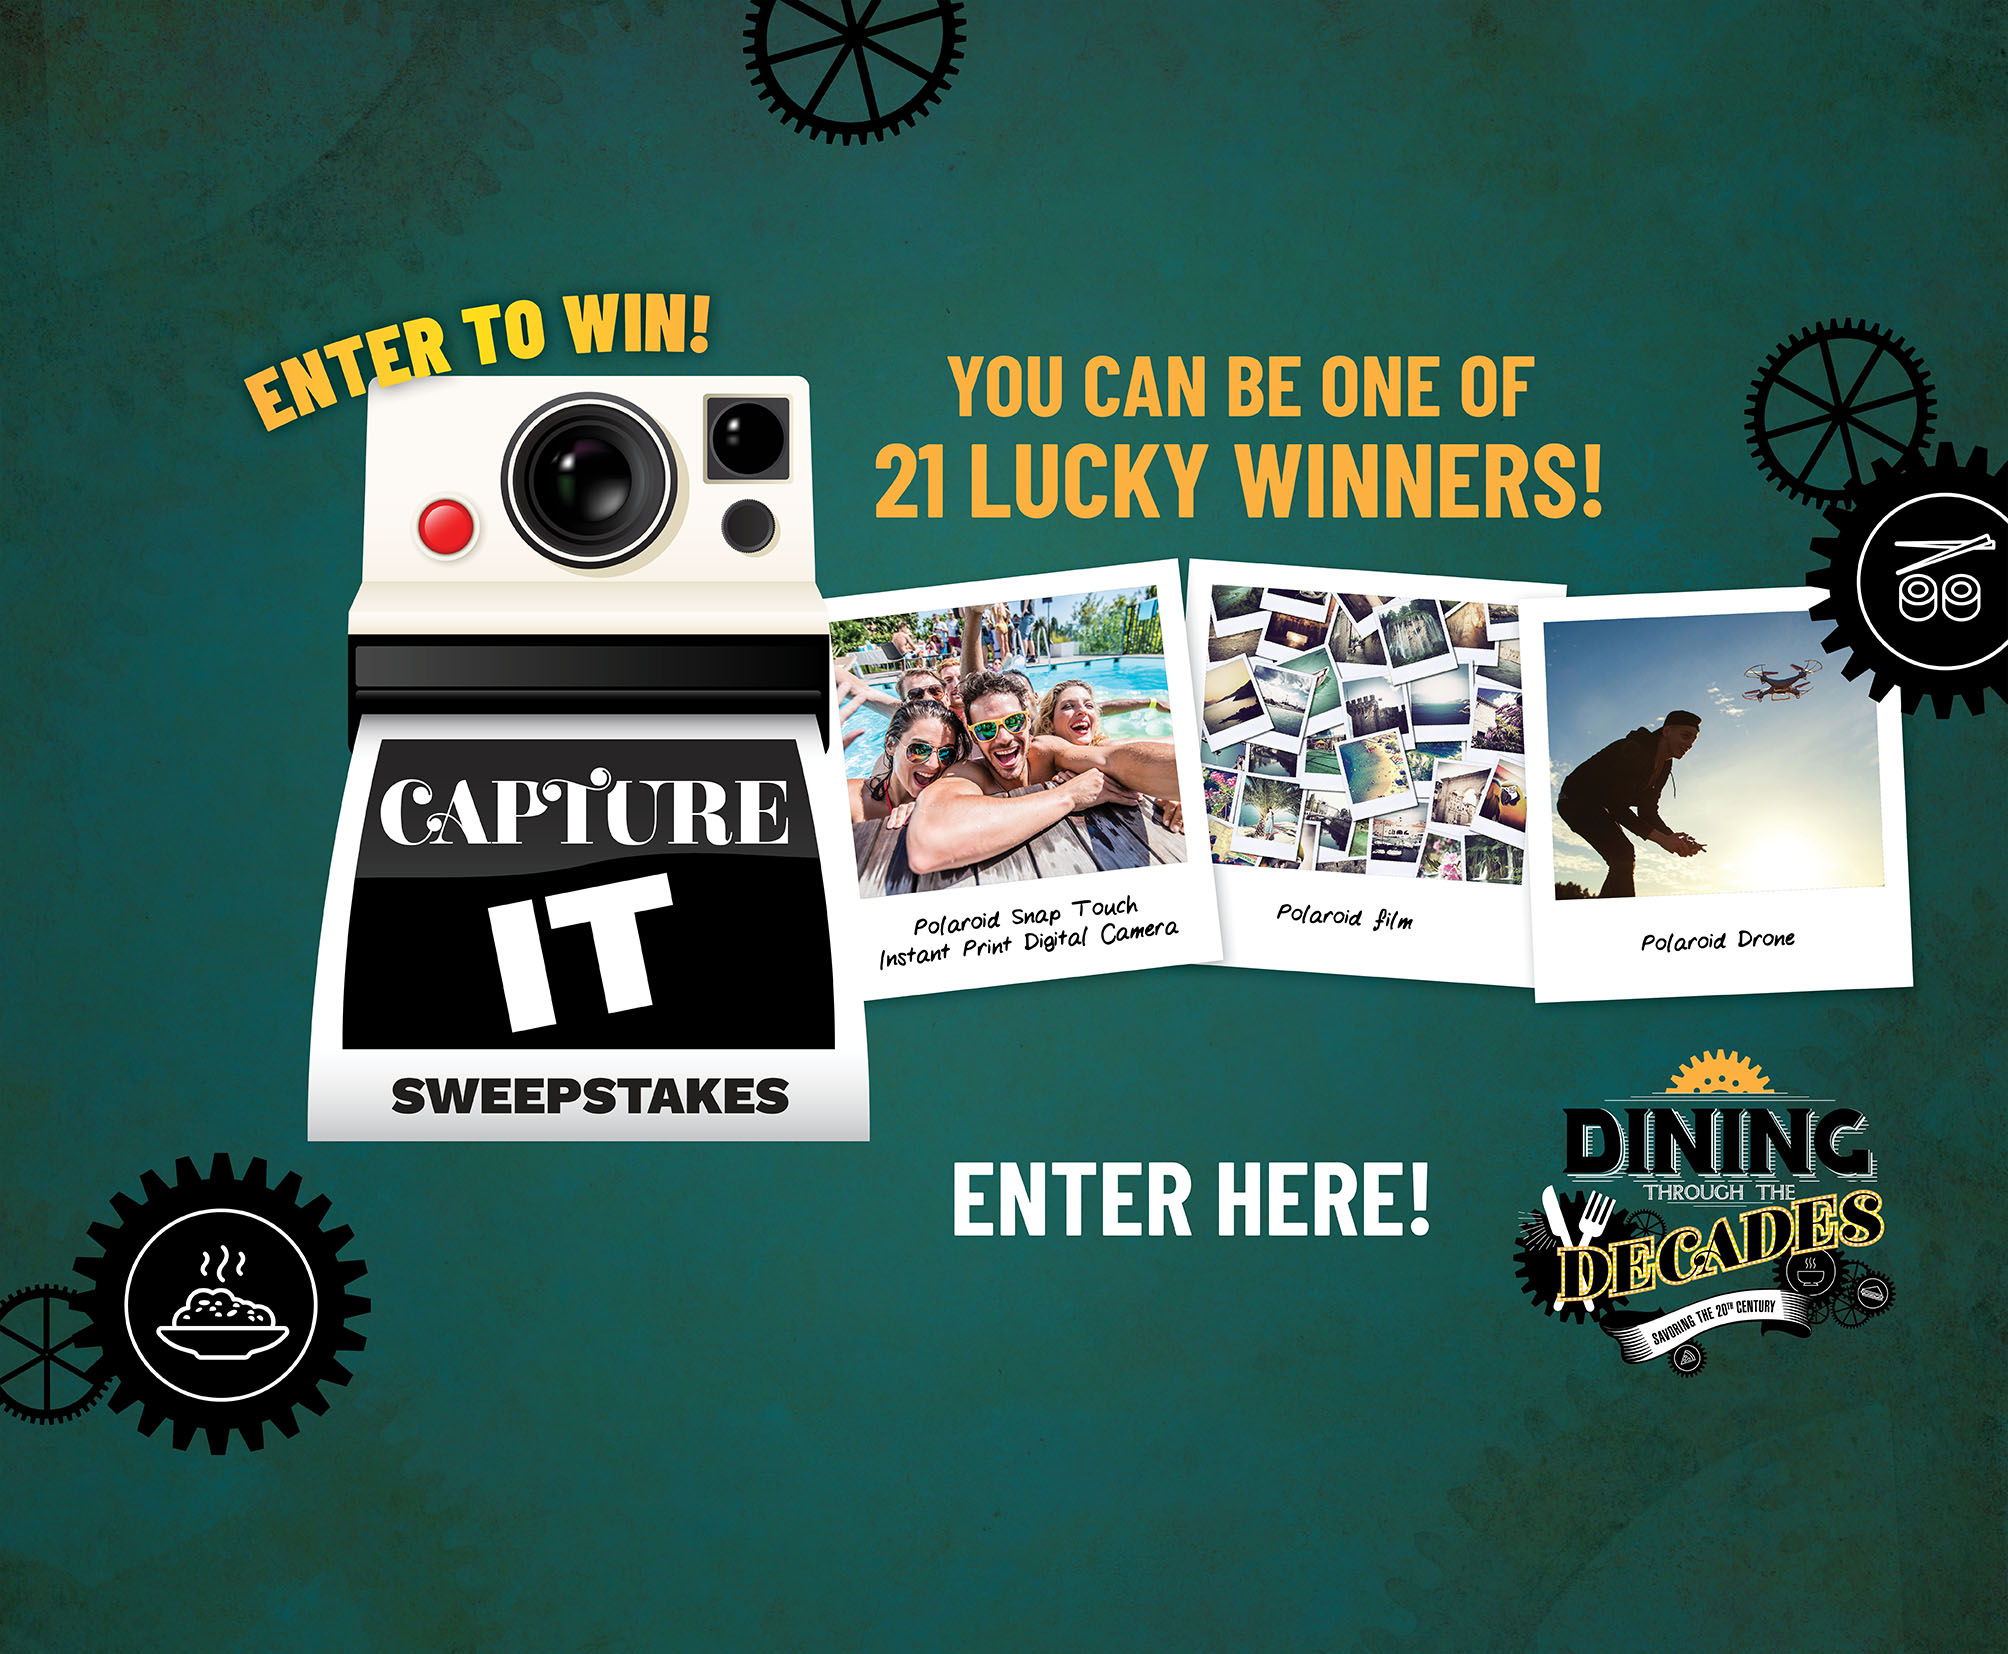 enter to win! you can be one of 21 lucky winners! capture it sweepstakes. enter here. dining through the decades. savoring the 20th century.